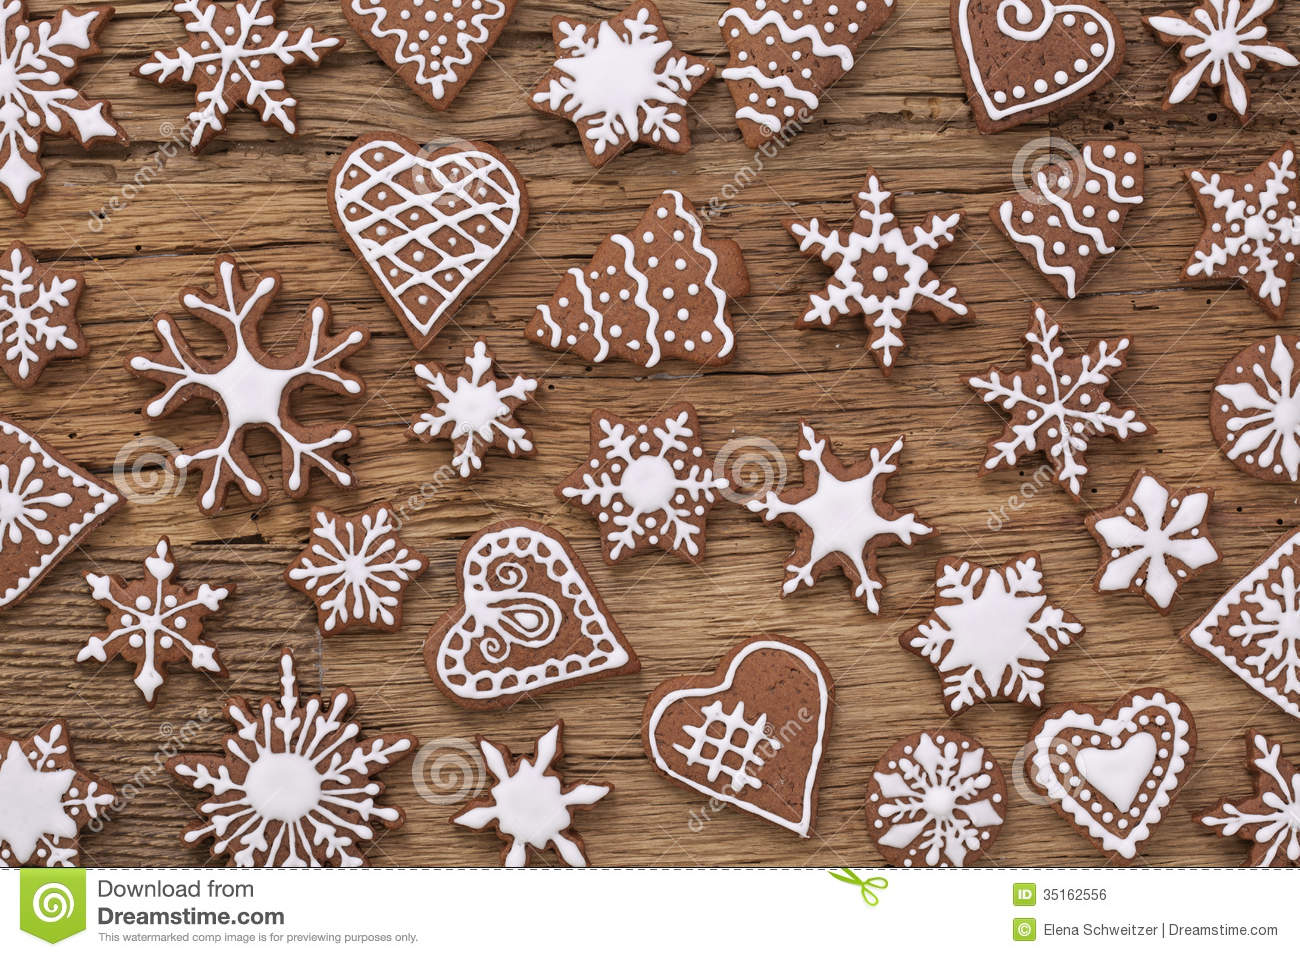 Gingerbread Cookies Royalty Free Stock Image - Image: 35162556